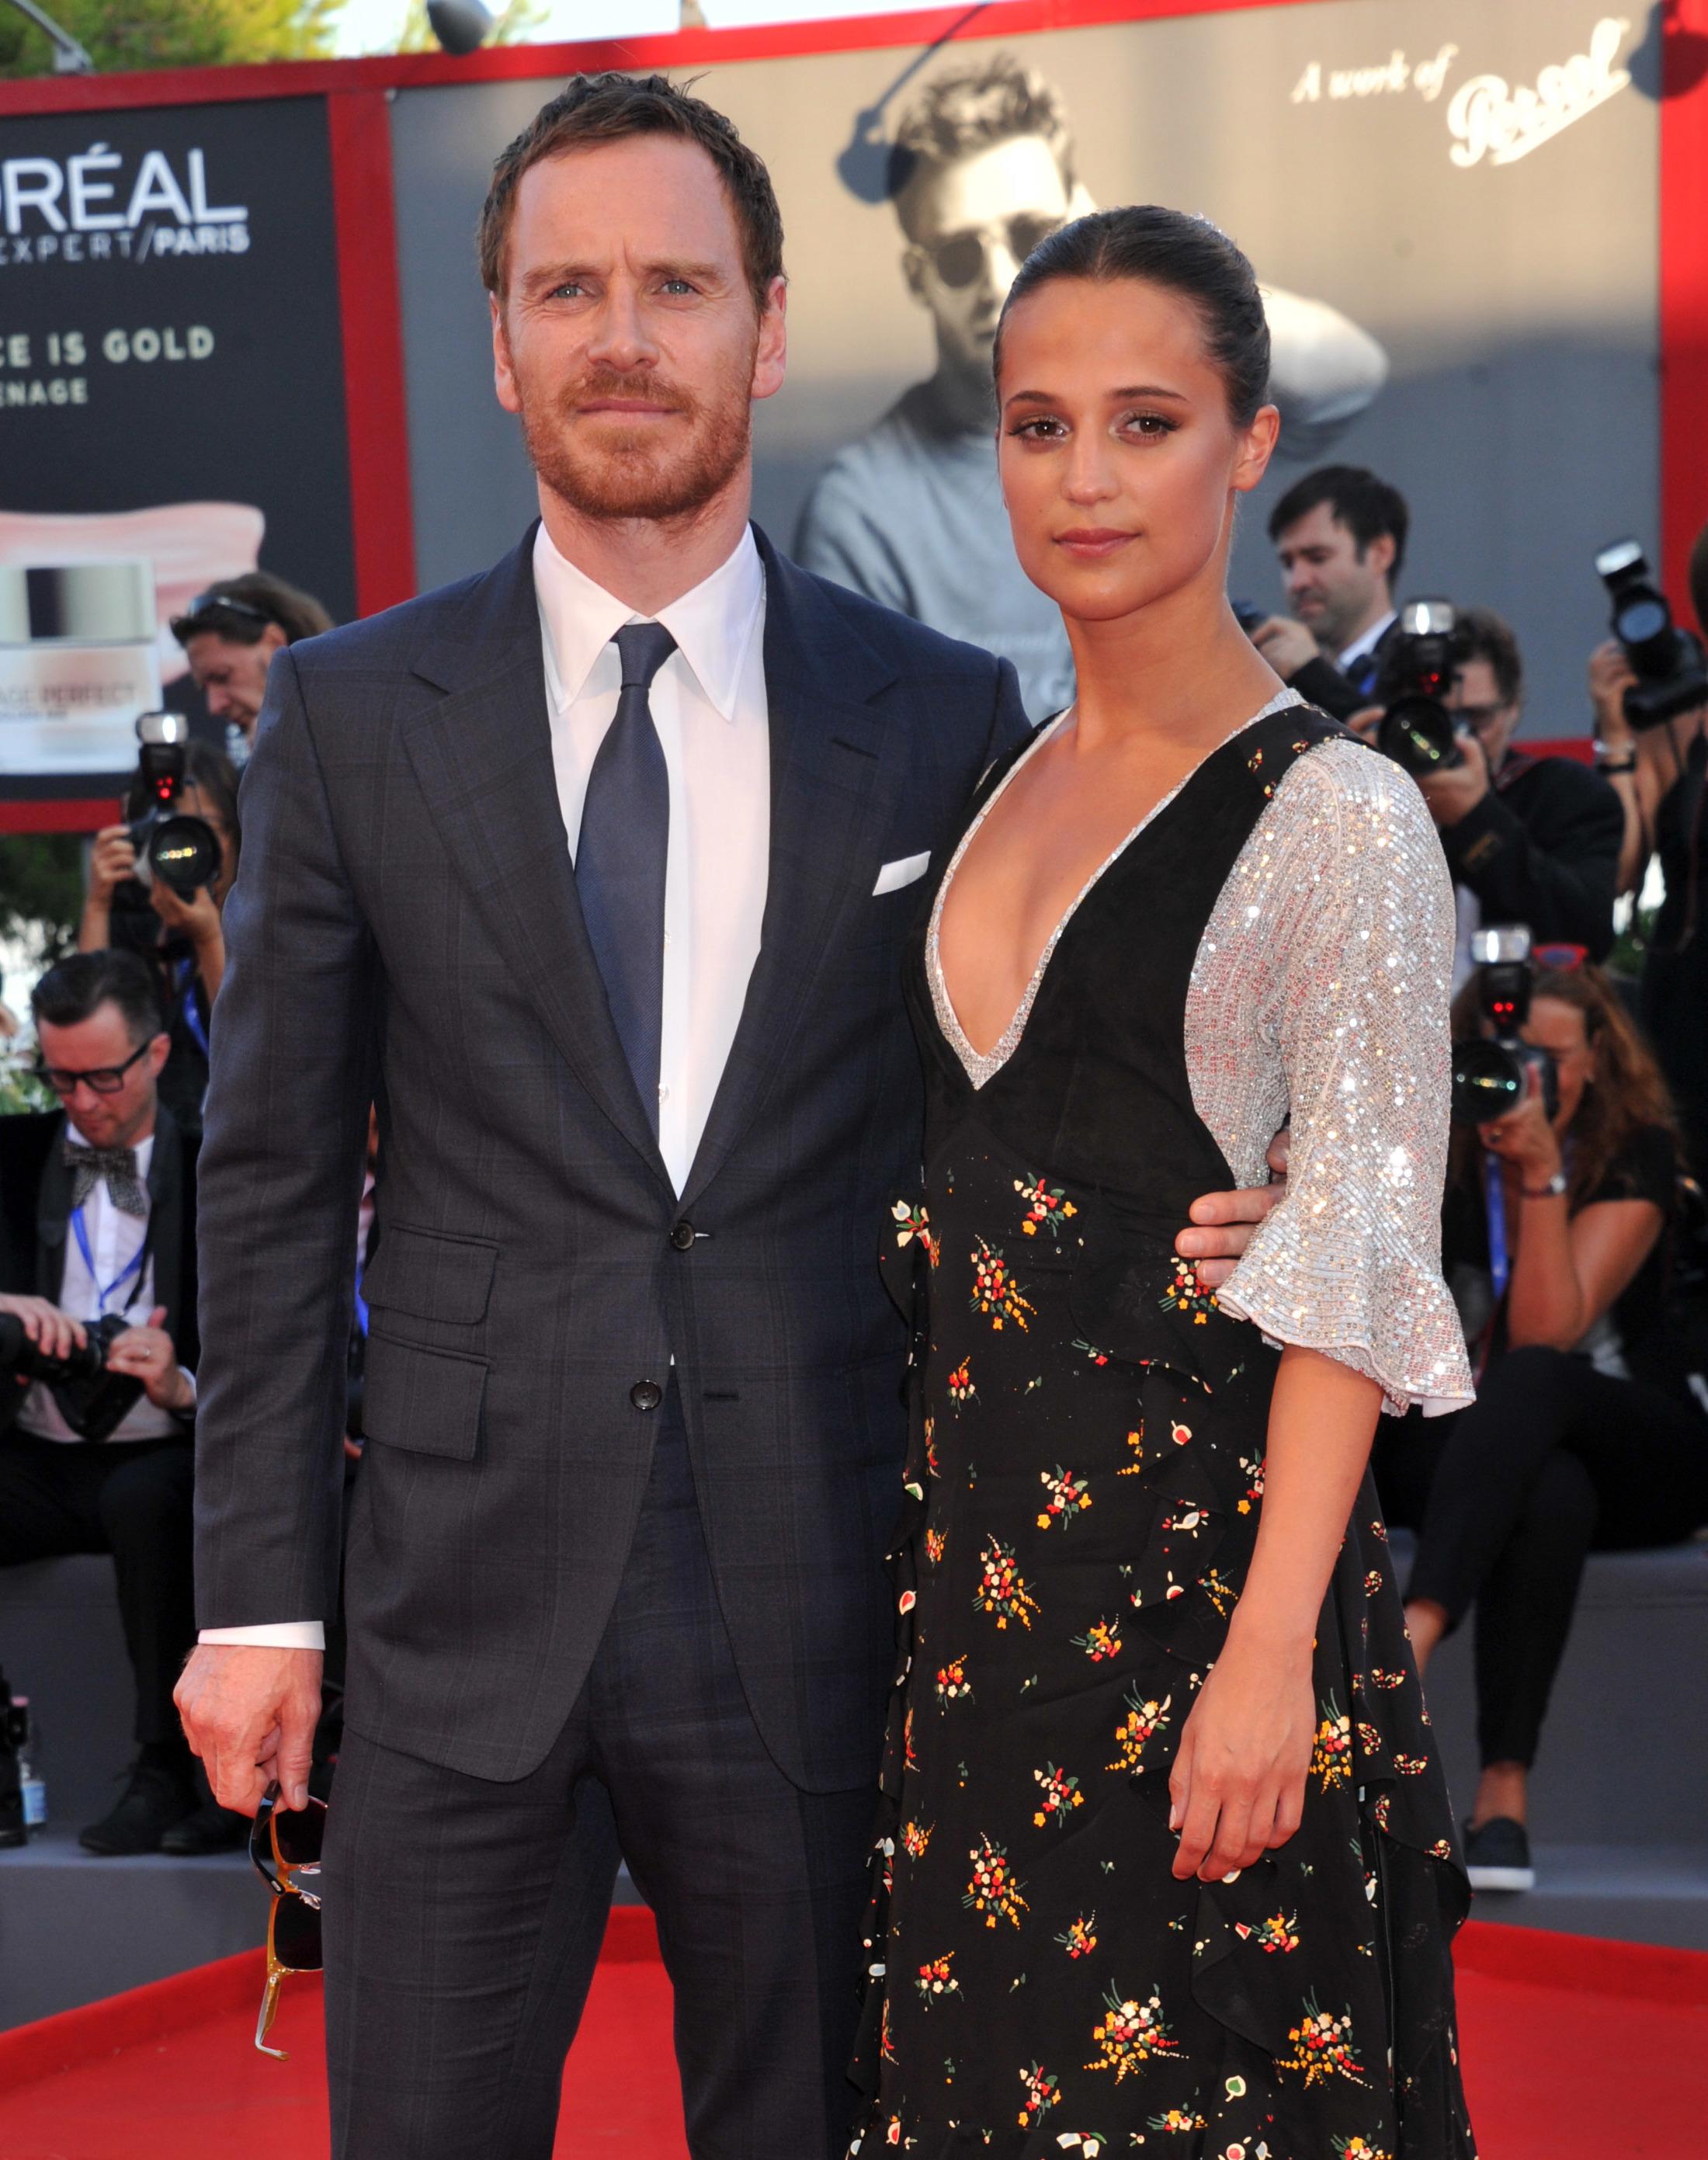 Alicia Vikander and Michael Fassbender attend the 73rd Venice Film Festival in Italy on Sept. 1, 2016.